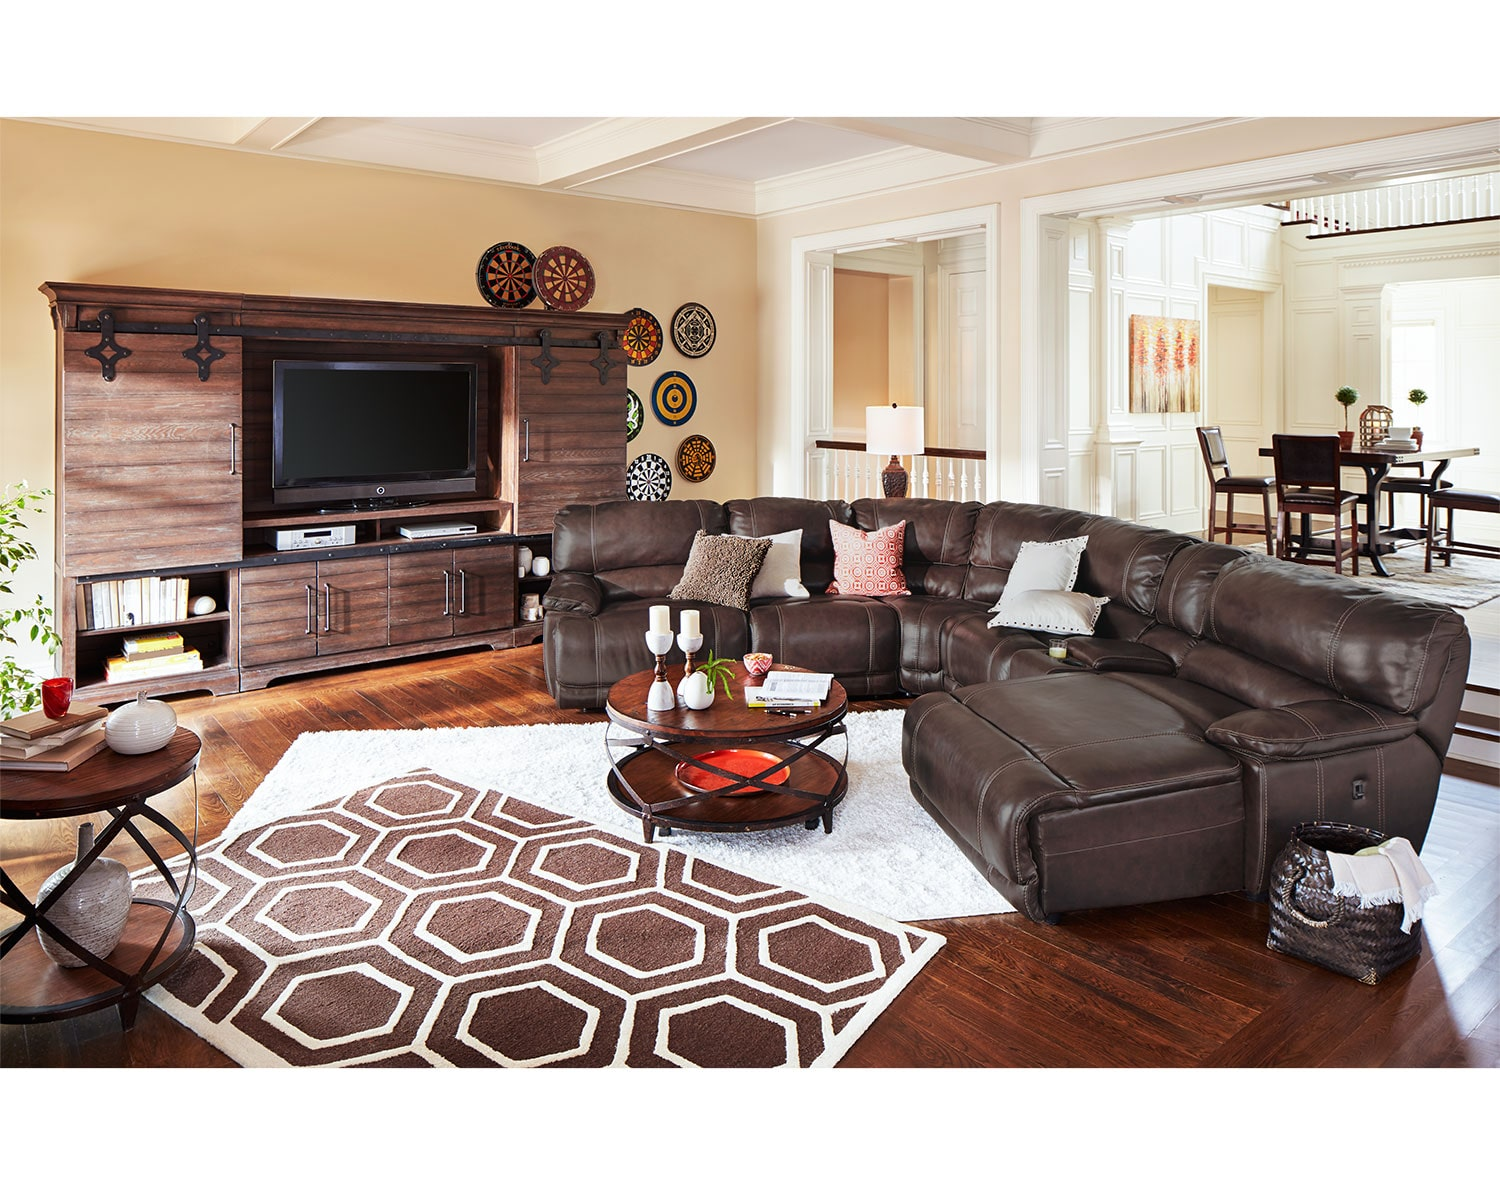 Leather living room furniture - The st malo collection brown